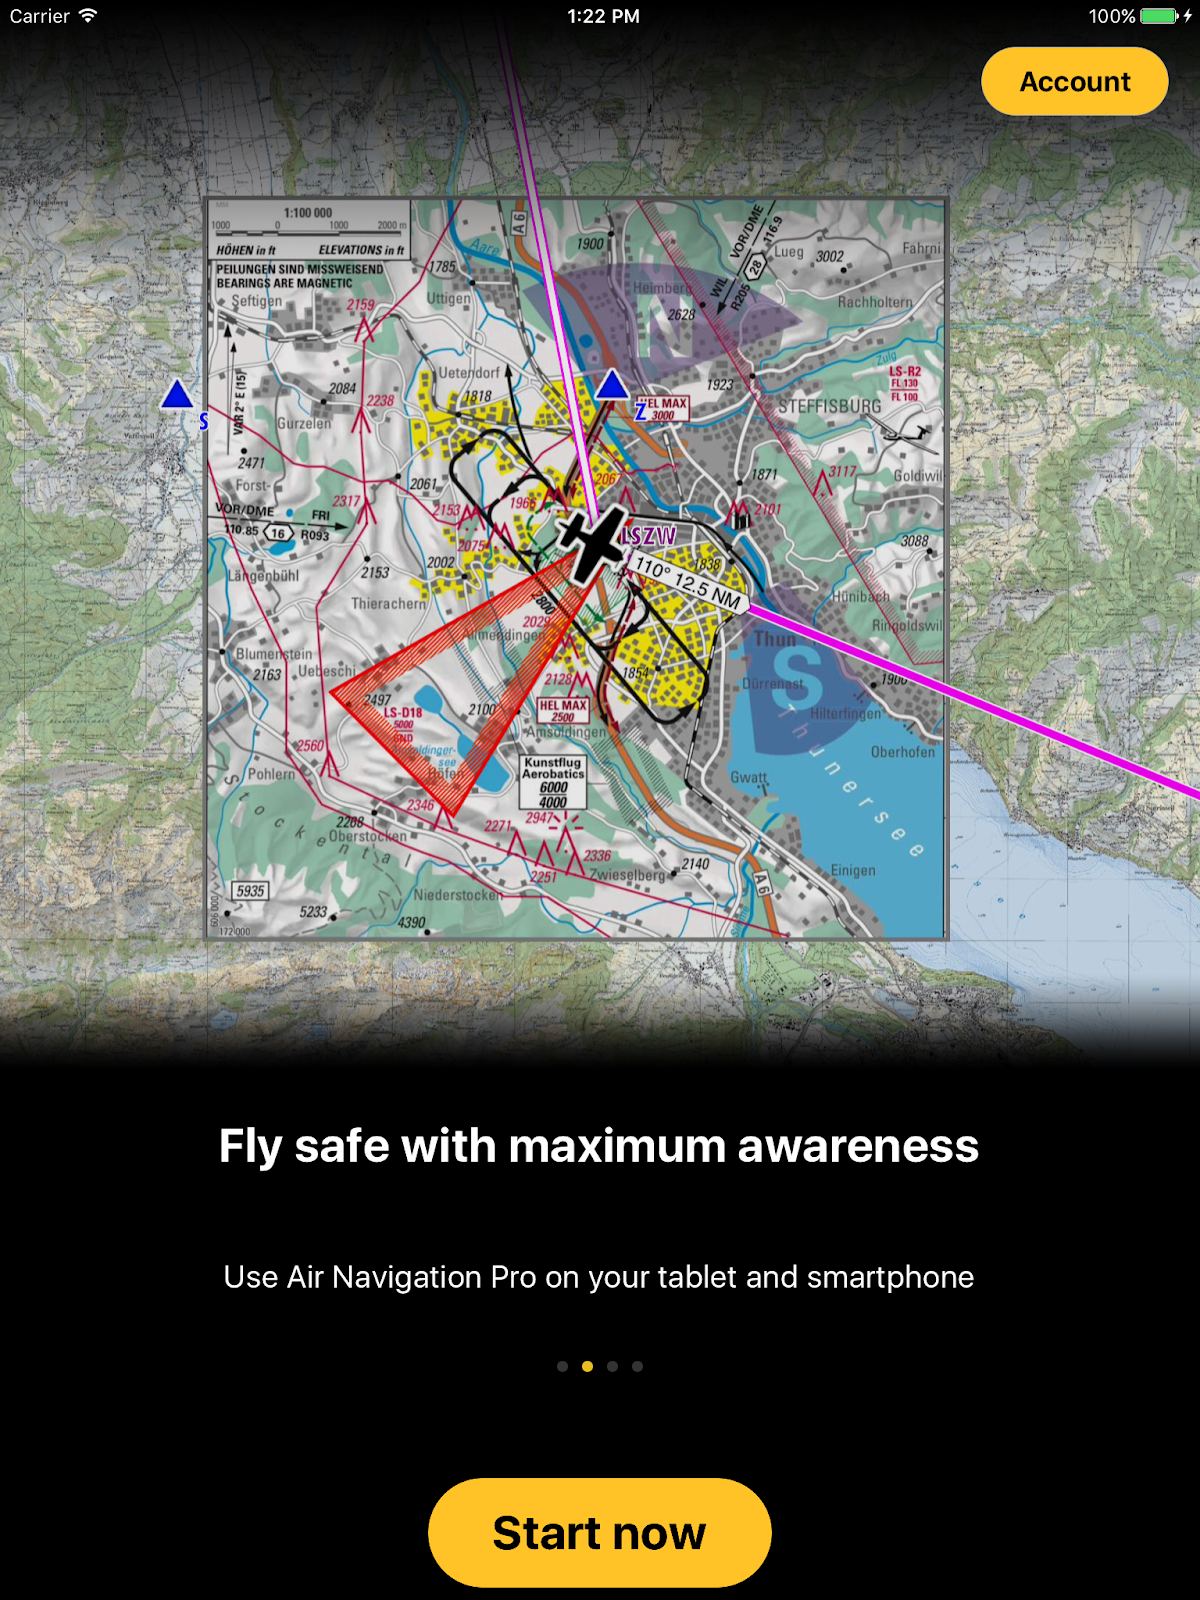 air navigation pro subscription packages are now available on ios rh blog airnavigation aero Air Navigation History Aircraft Navigation System